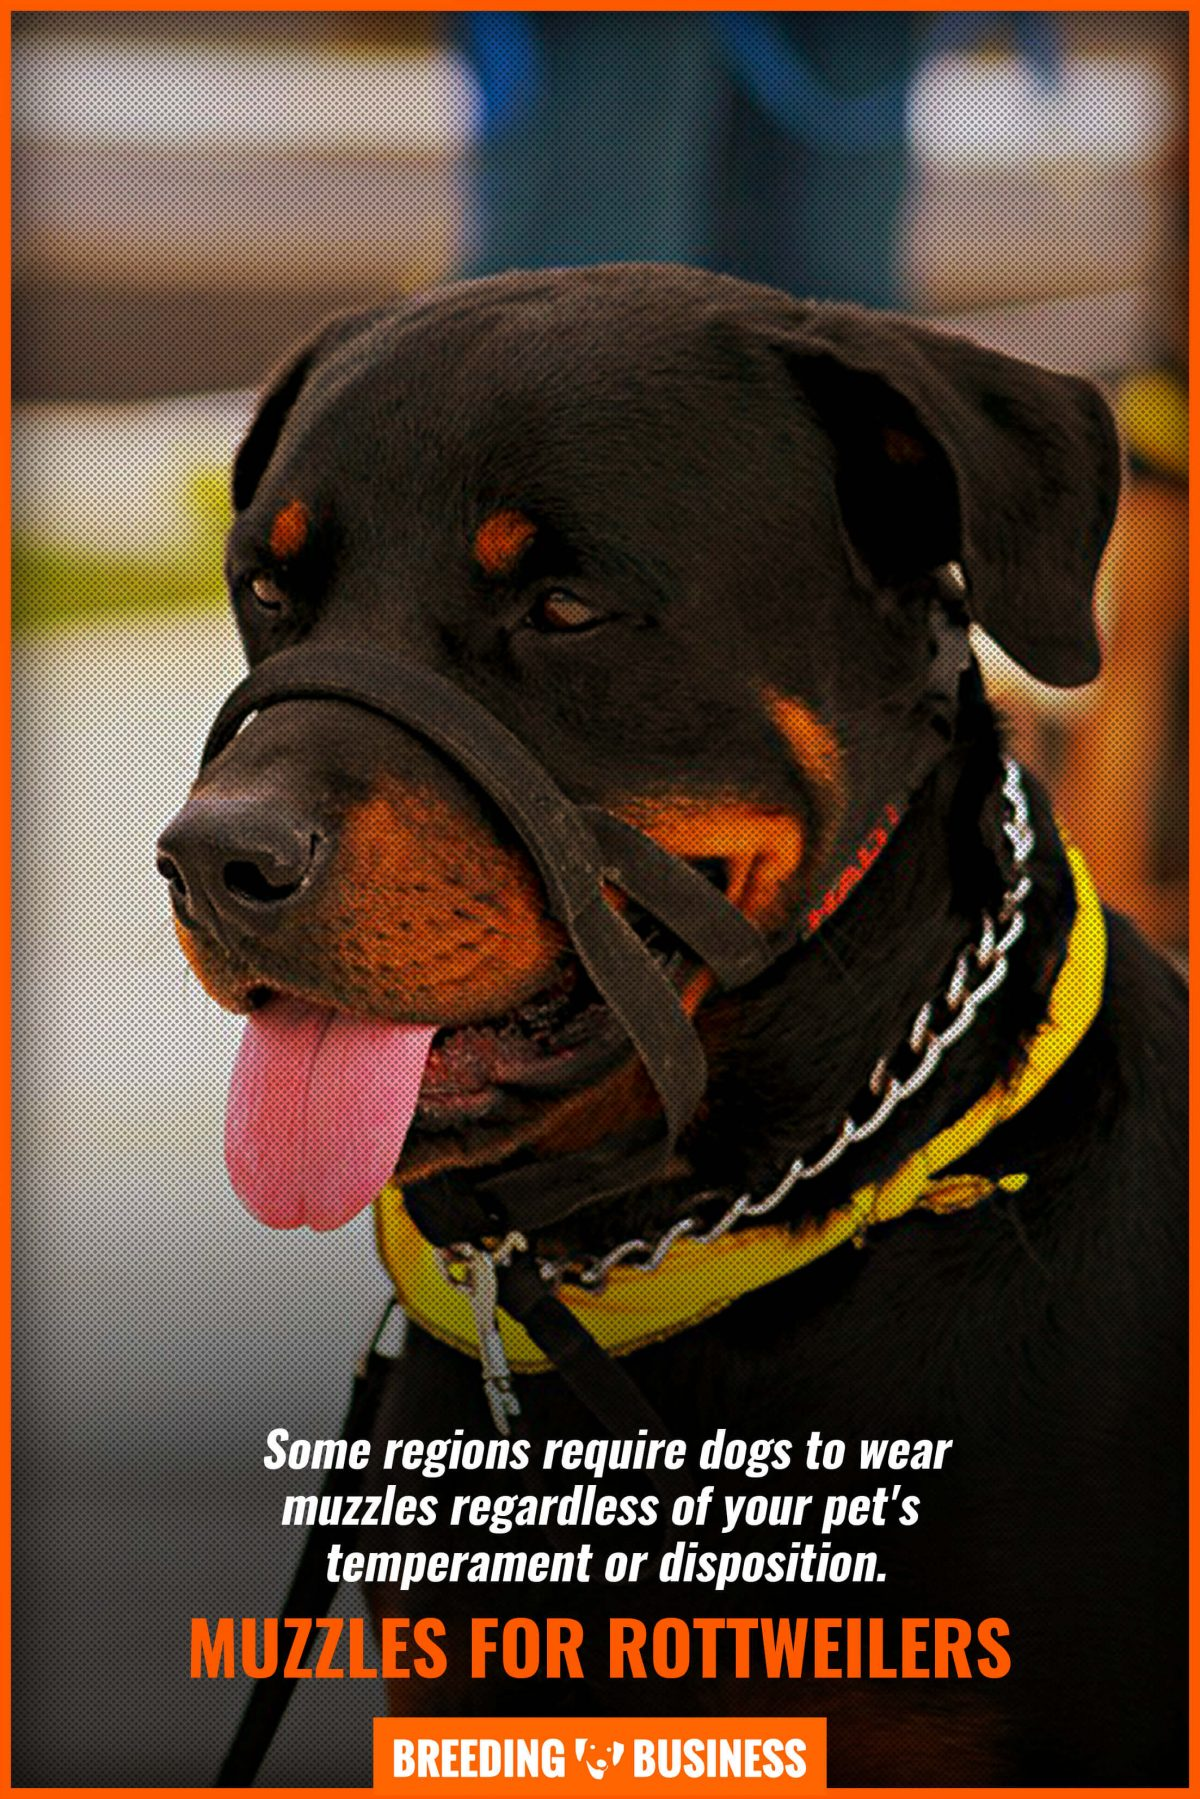 muzzles for rottweilers